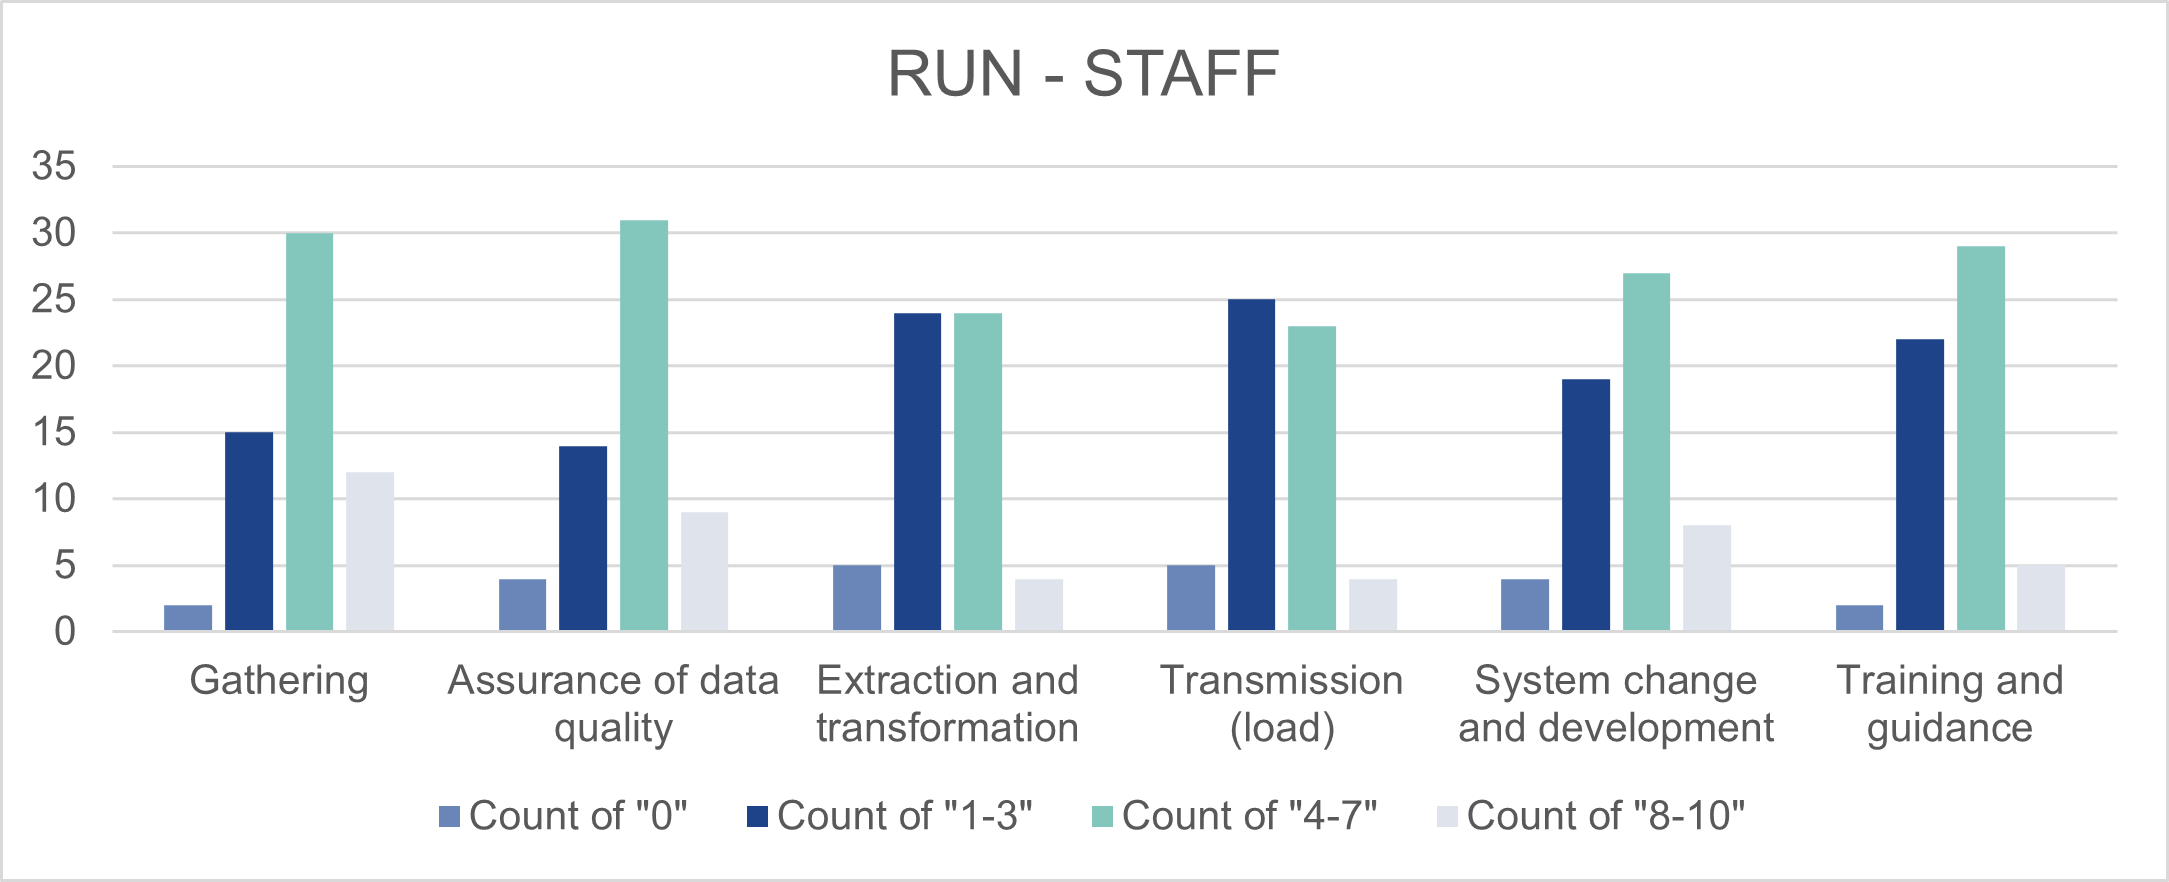 This is a bar chart. Its purpose is to show a summary assessment score for operating the new process ('Run').